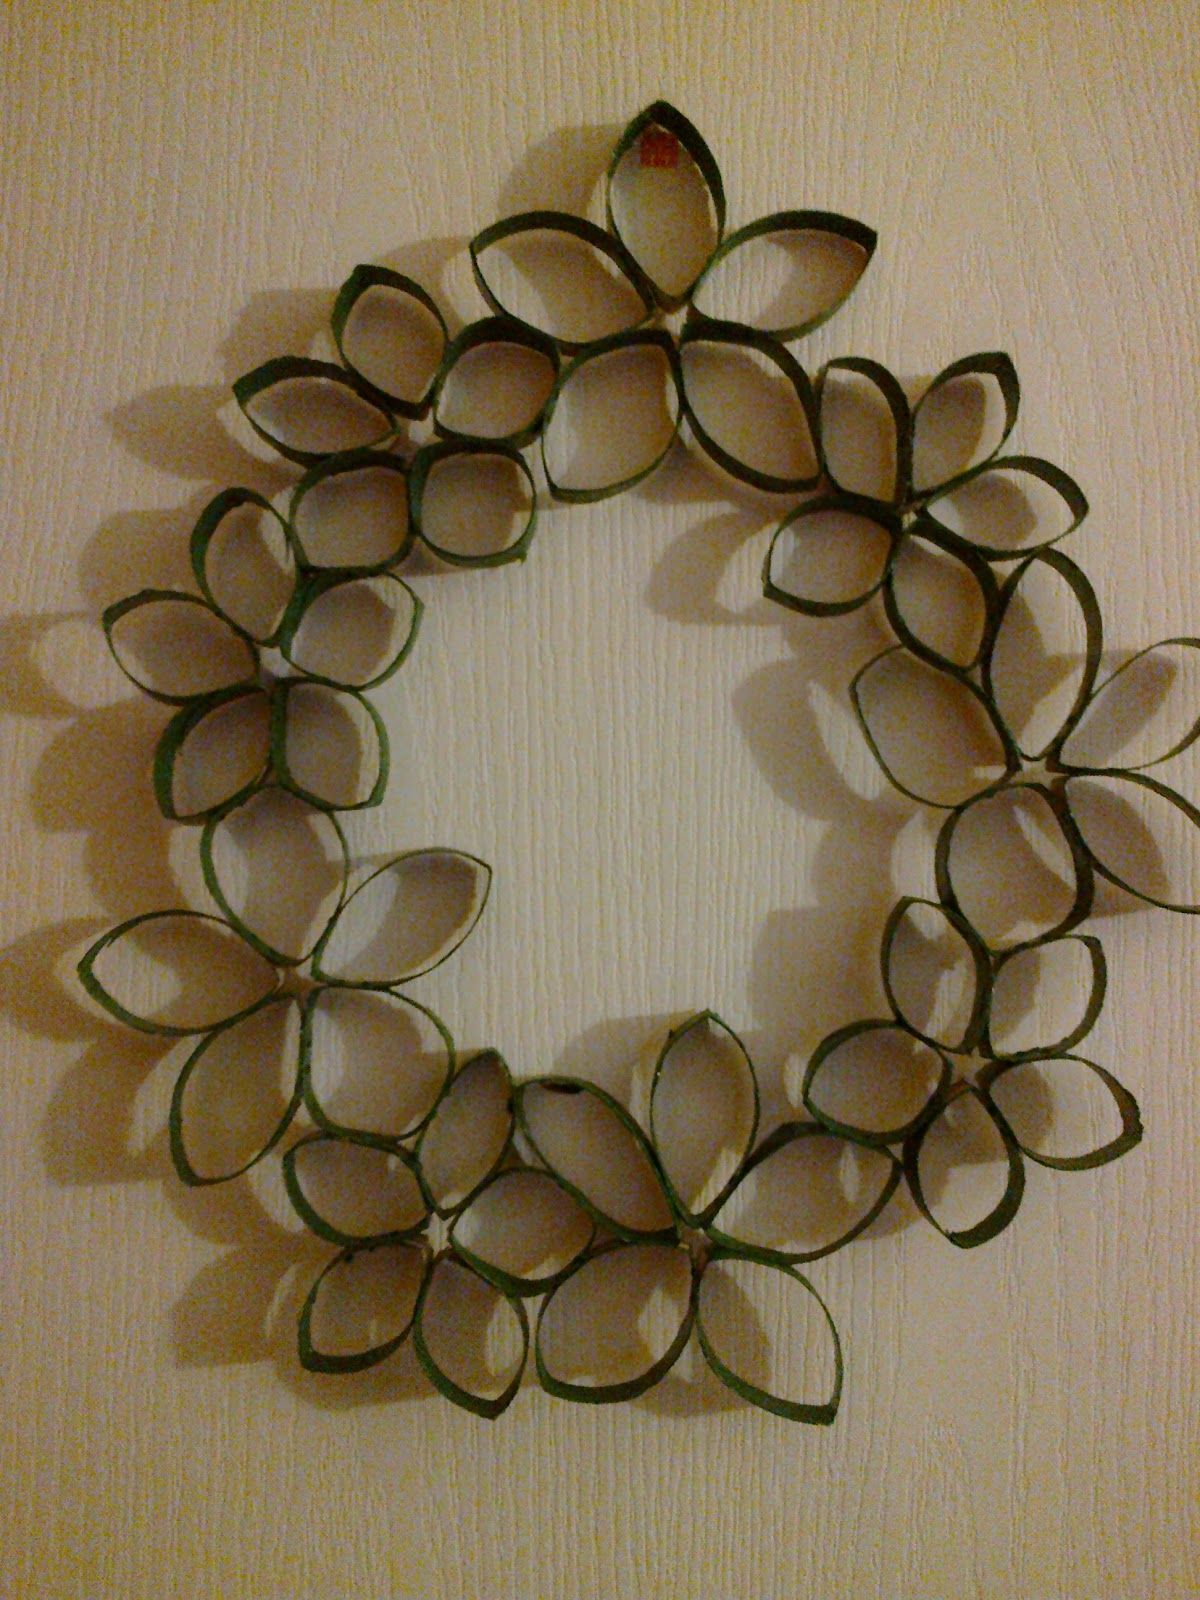 Star Wall Art Wreath Toilet Paper Roll Art Instructions Are